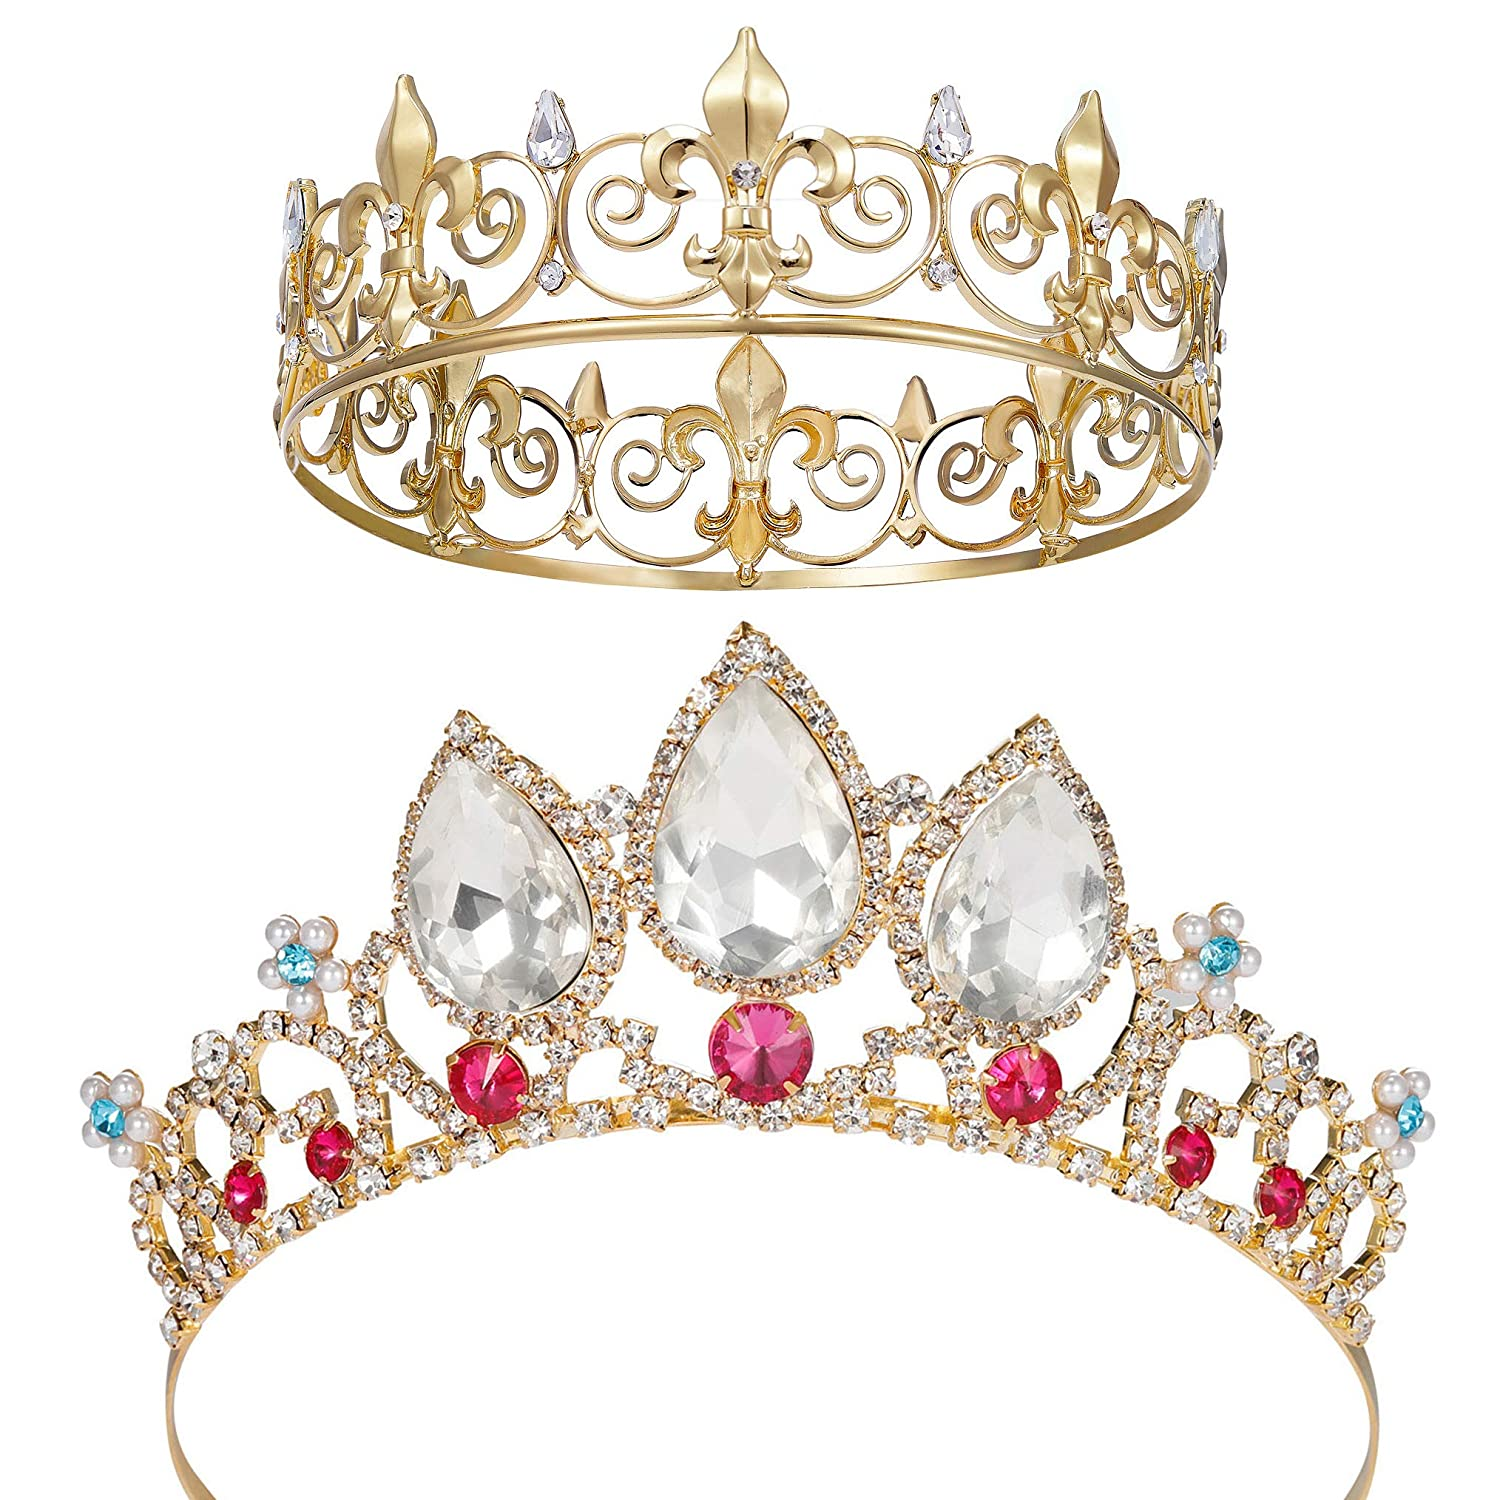 SWEETV Gold Tiaras and Crowns for Men & Girls - Costume Headpiece Set - Metal Tiara Accessories for Wedding Prom Cosplay Party